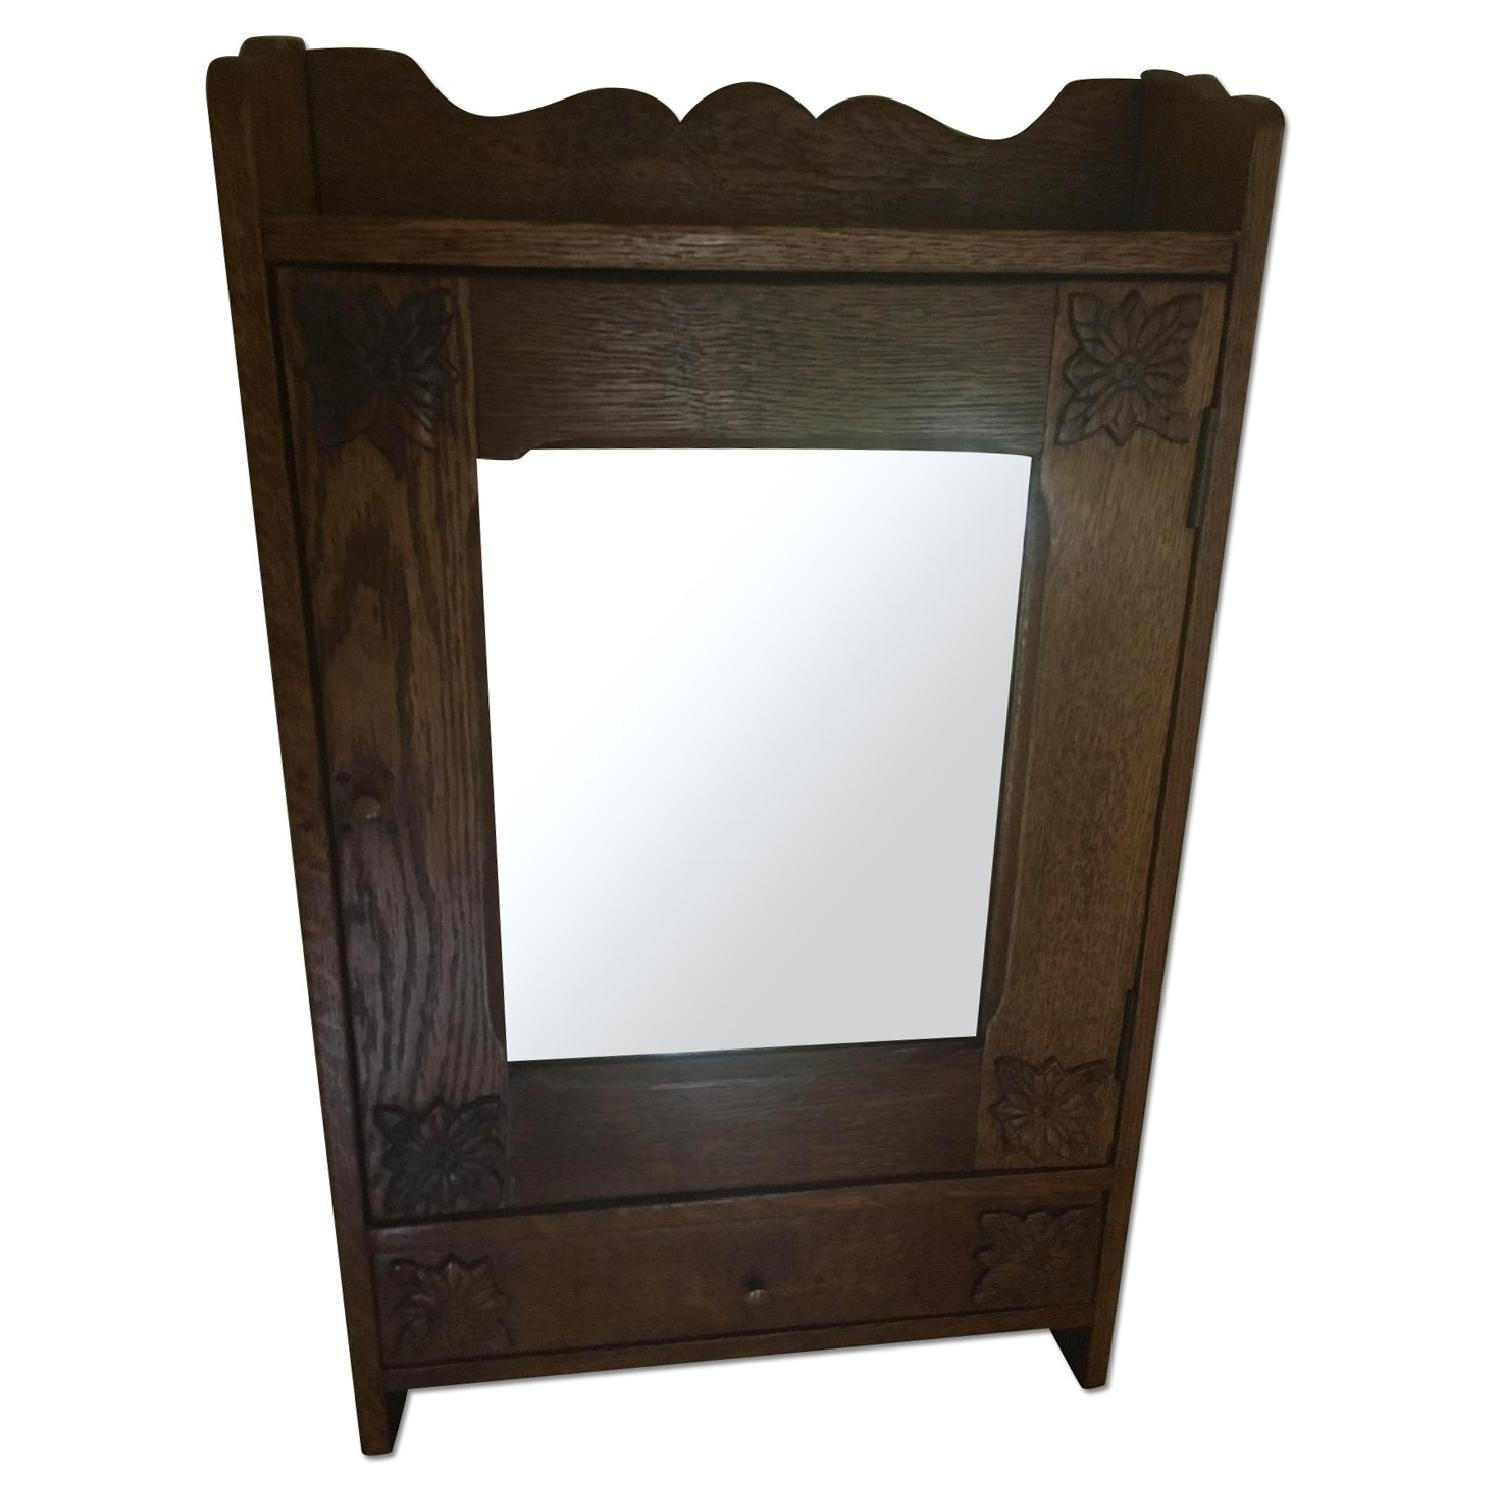 Antique Oak Mirrored Medicine Cabinet